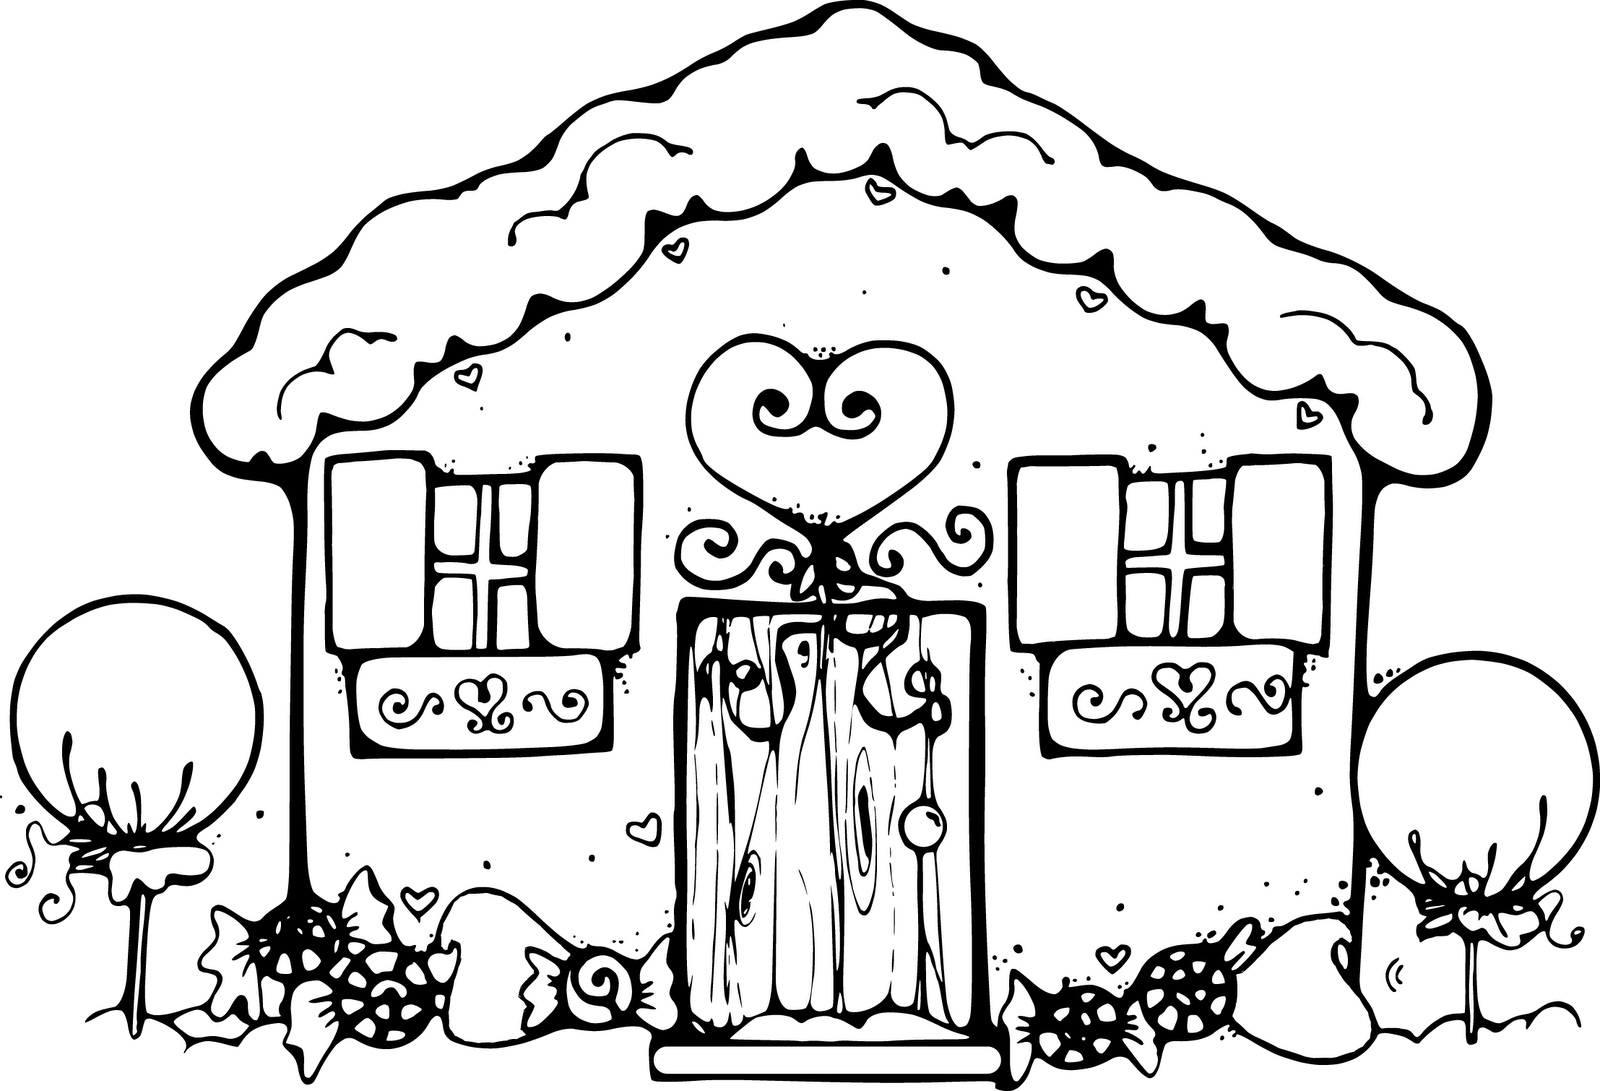 house coloring sheet house coloring page twisty noodle coloring sheet house